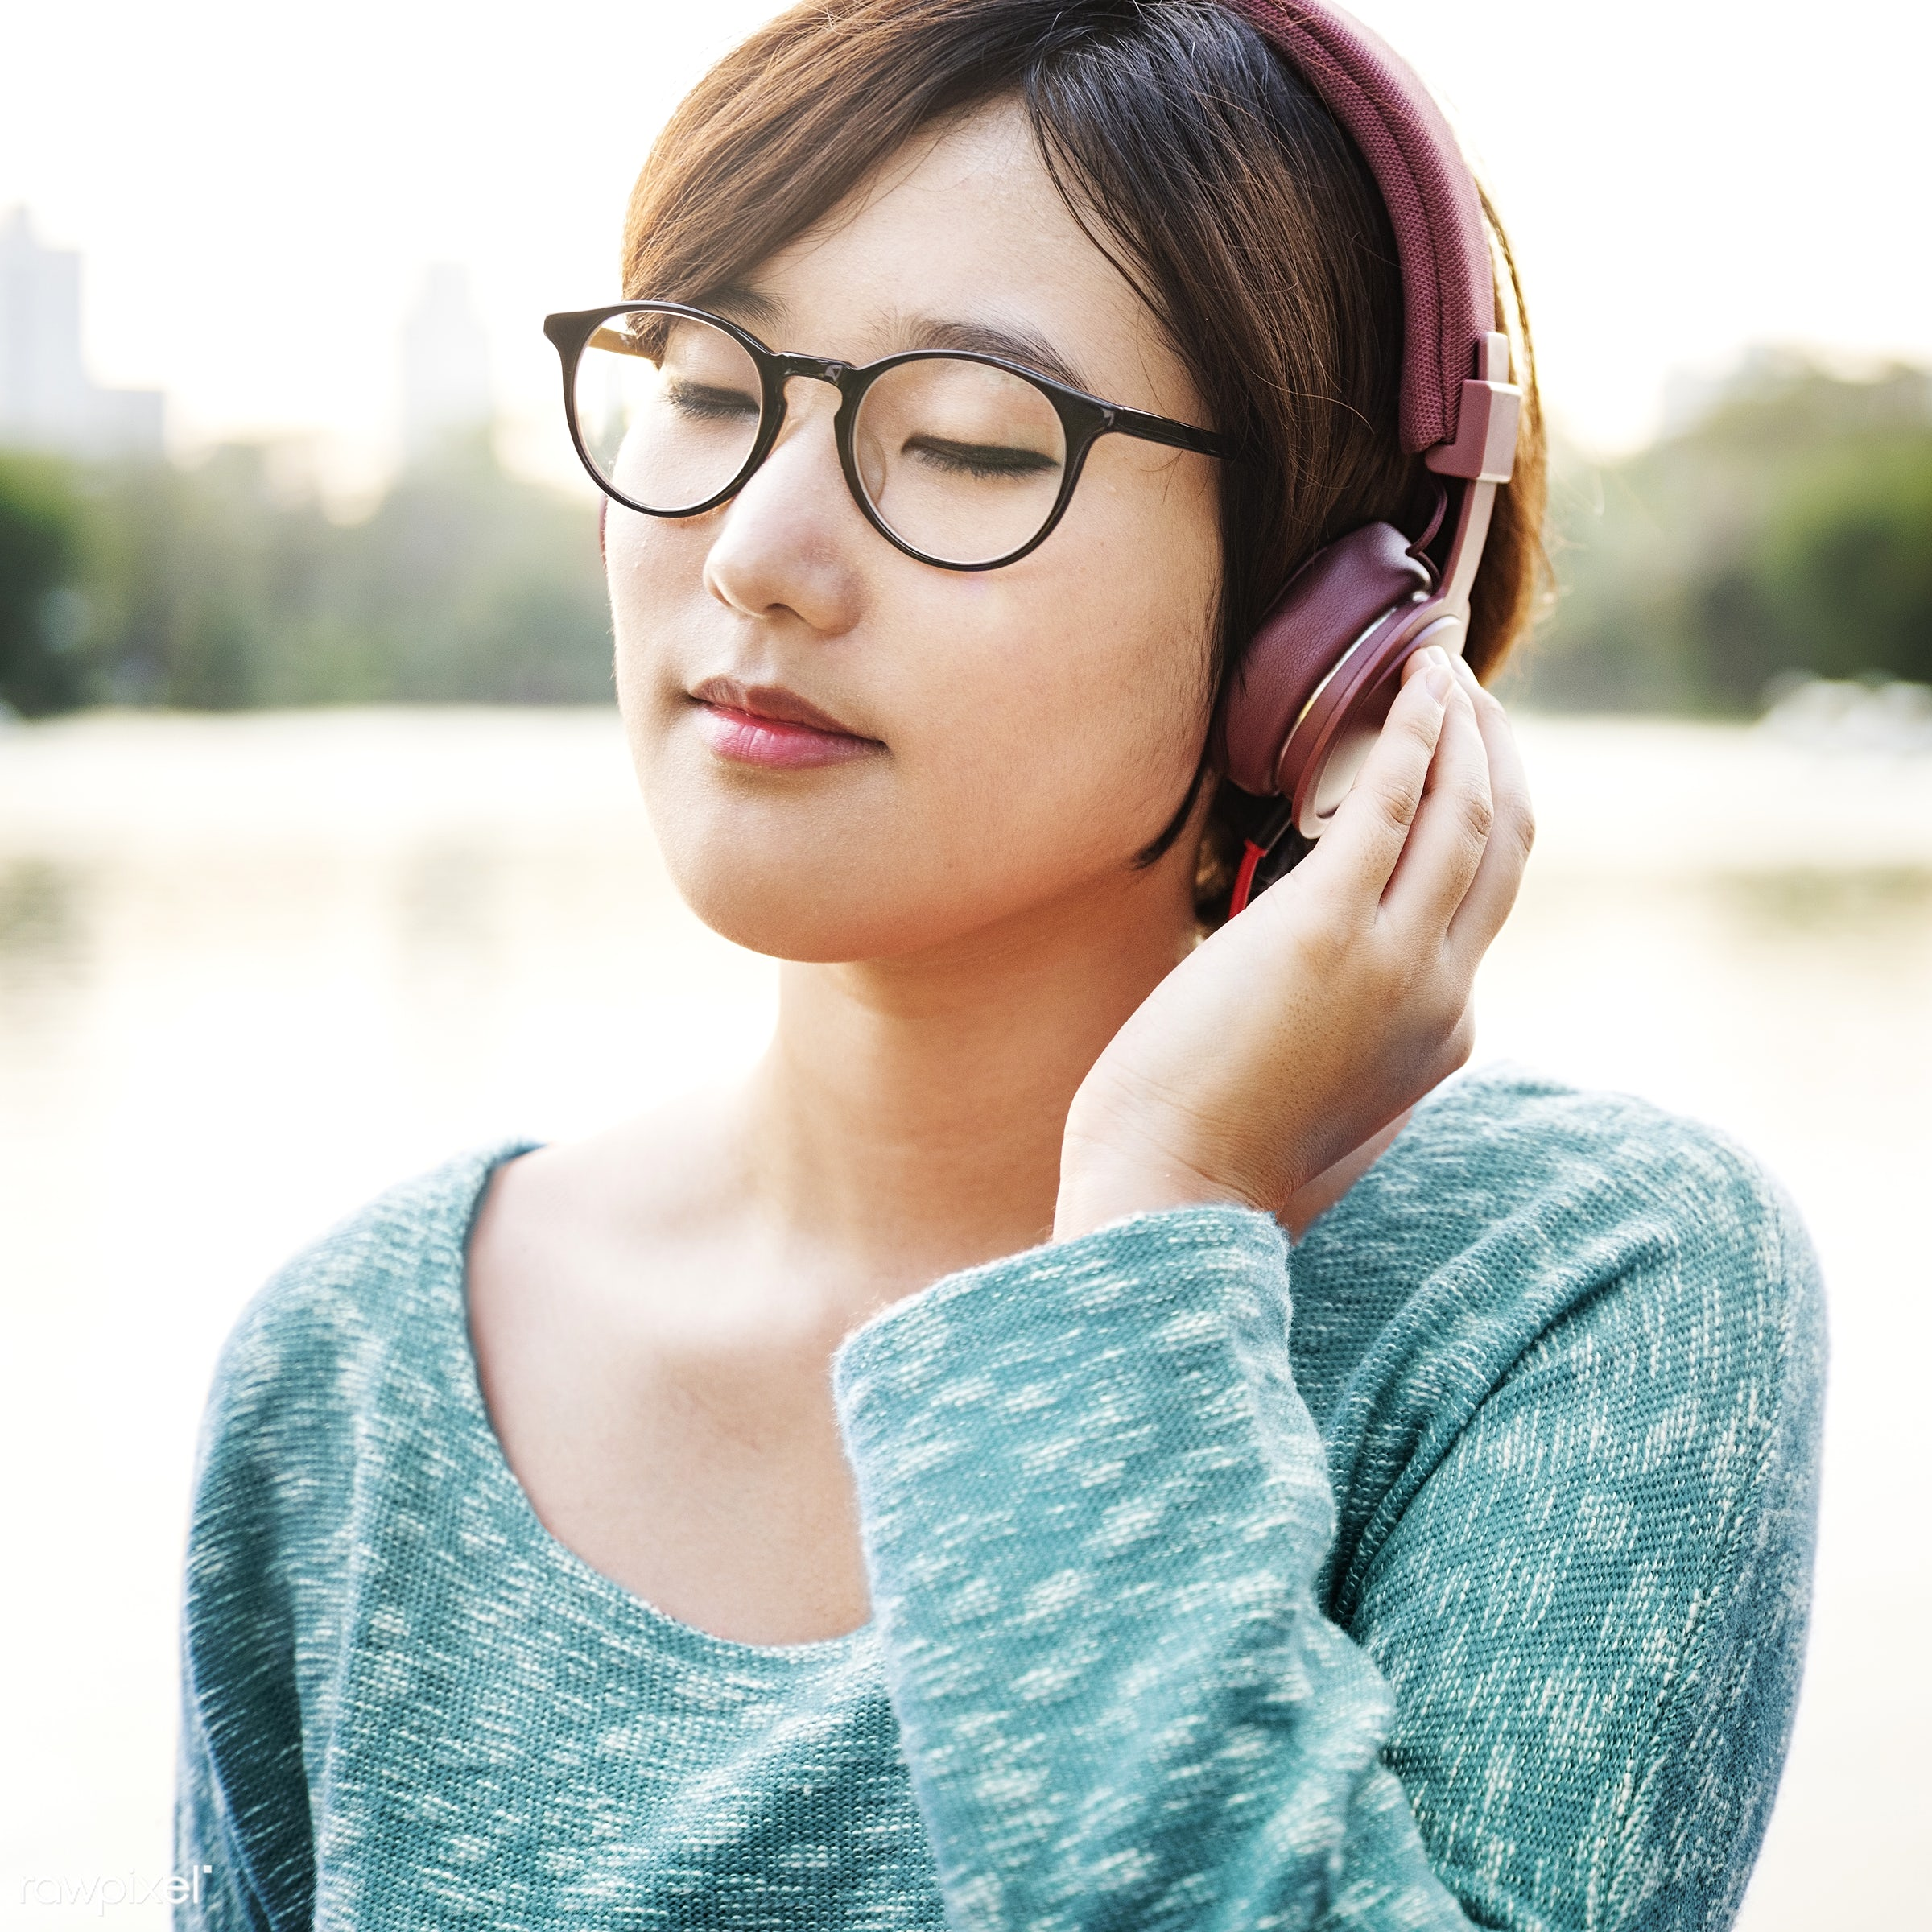 activity, asian ethnicity, audio equipment, calm, casual, chilling, earphones, electronic, enjoyment, entertainment,...